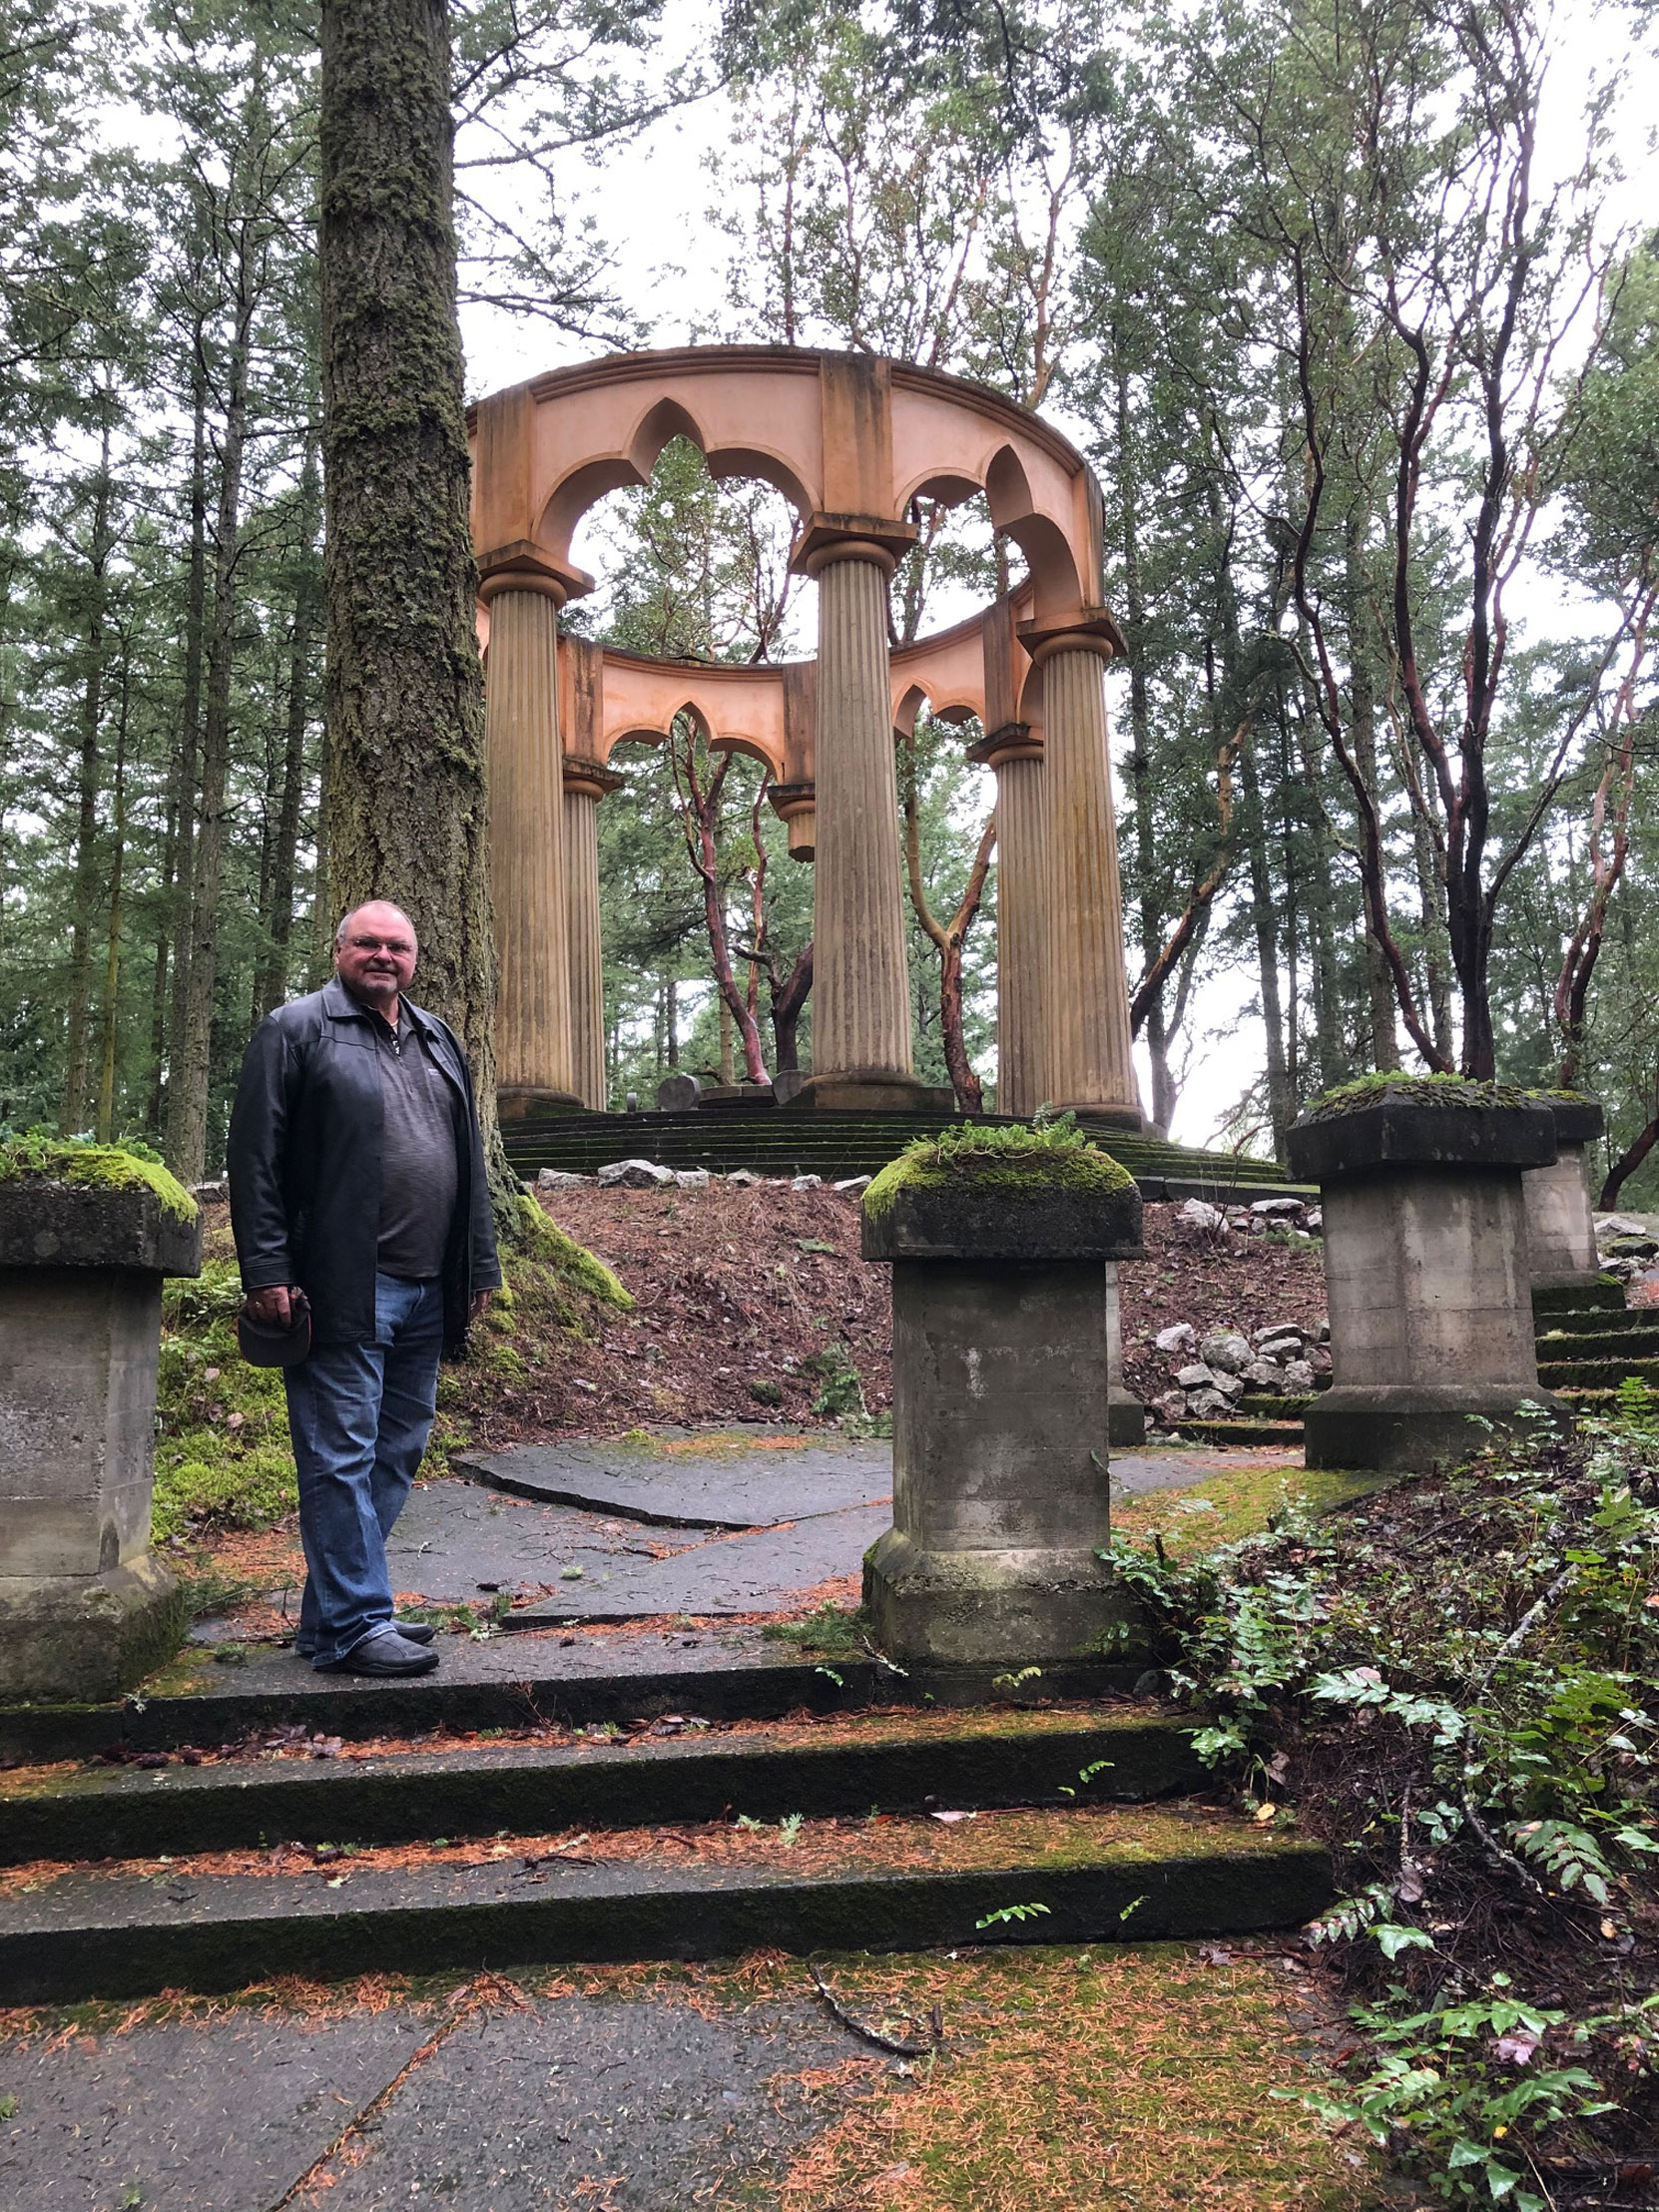 Mike Gains of V&Q, Lodge, No. 2, at the McMillin Mausoleum, Roche Harbor, Washington. (photo by Mike Gains, V&Q, No.2)